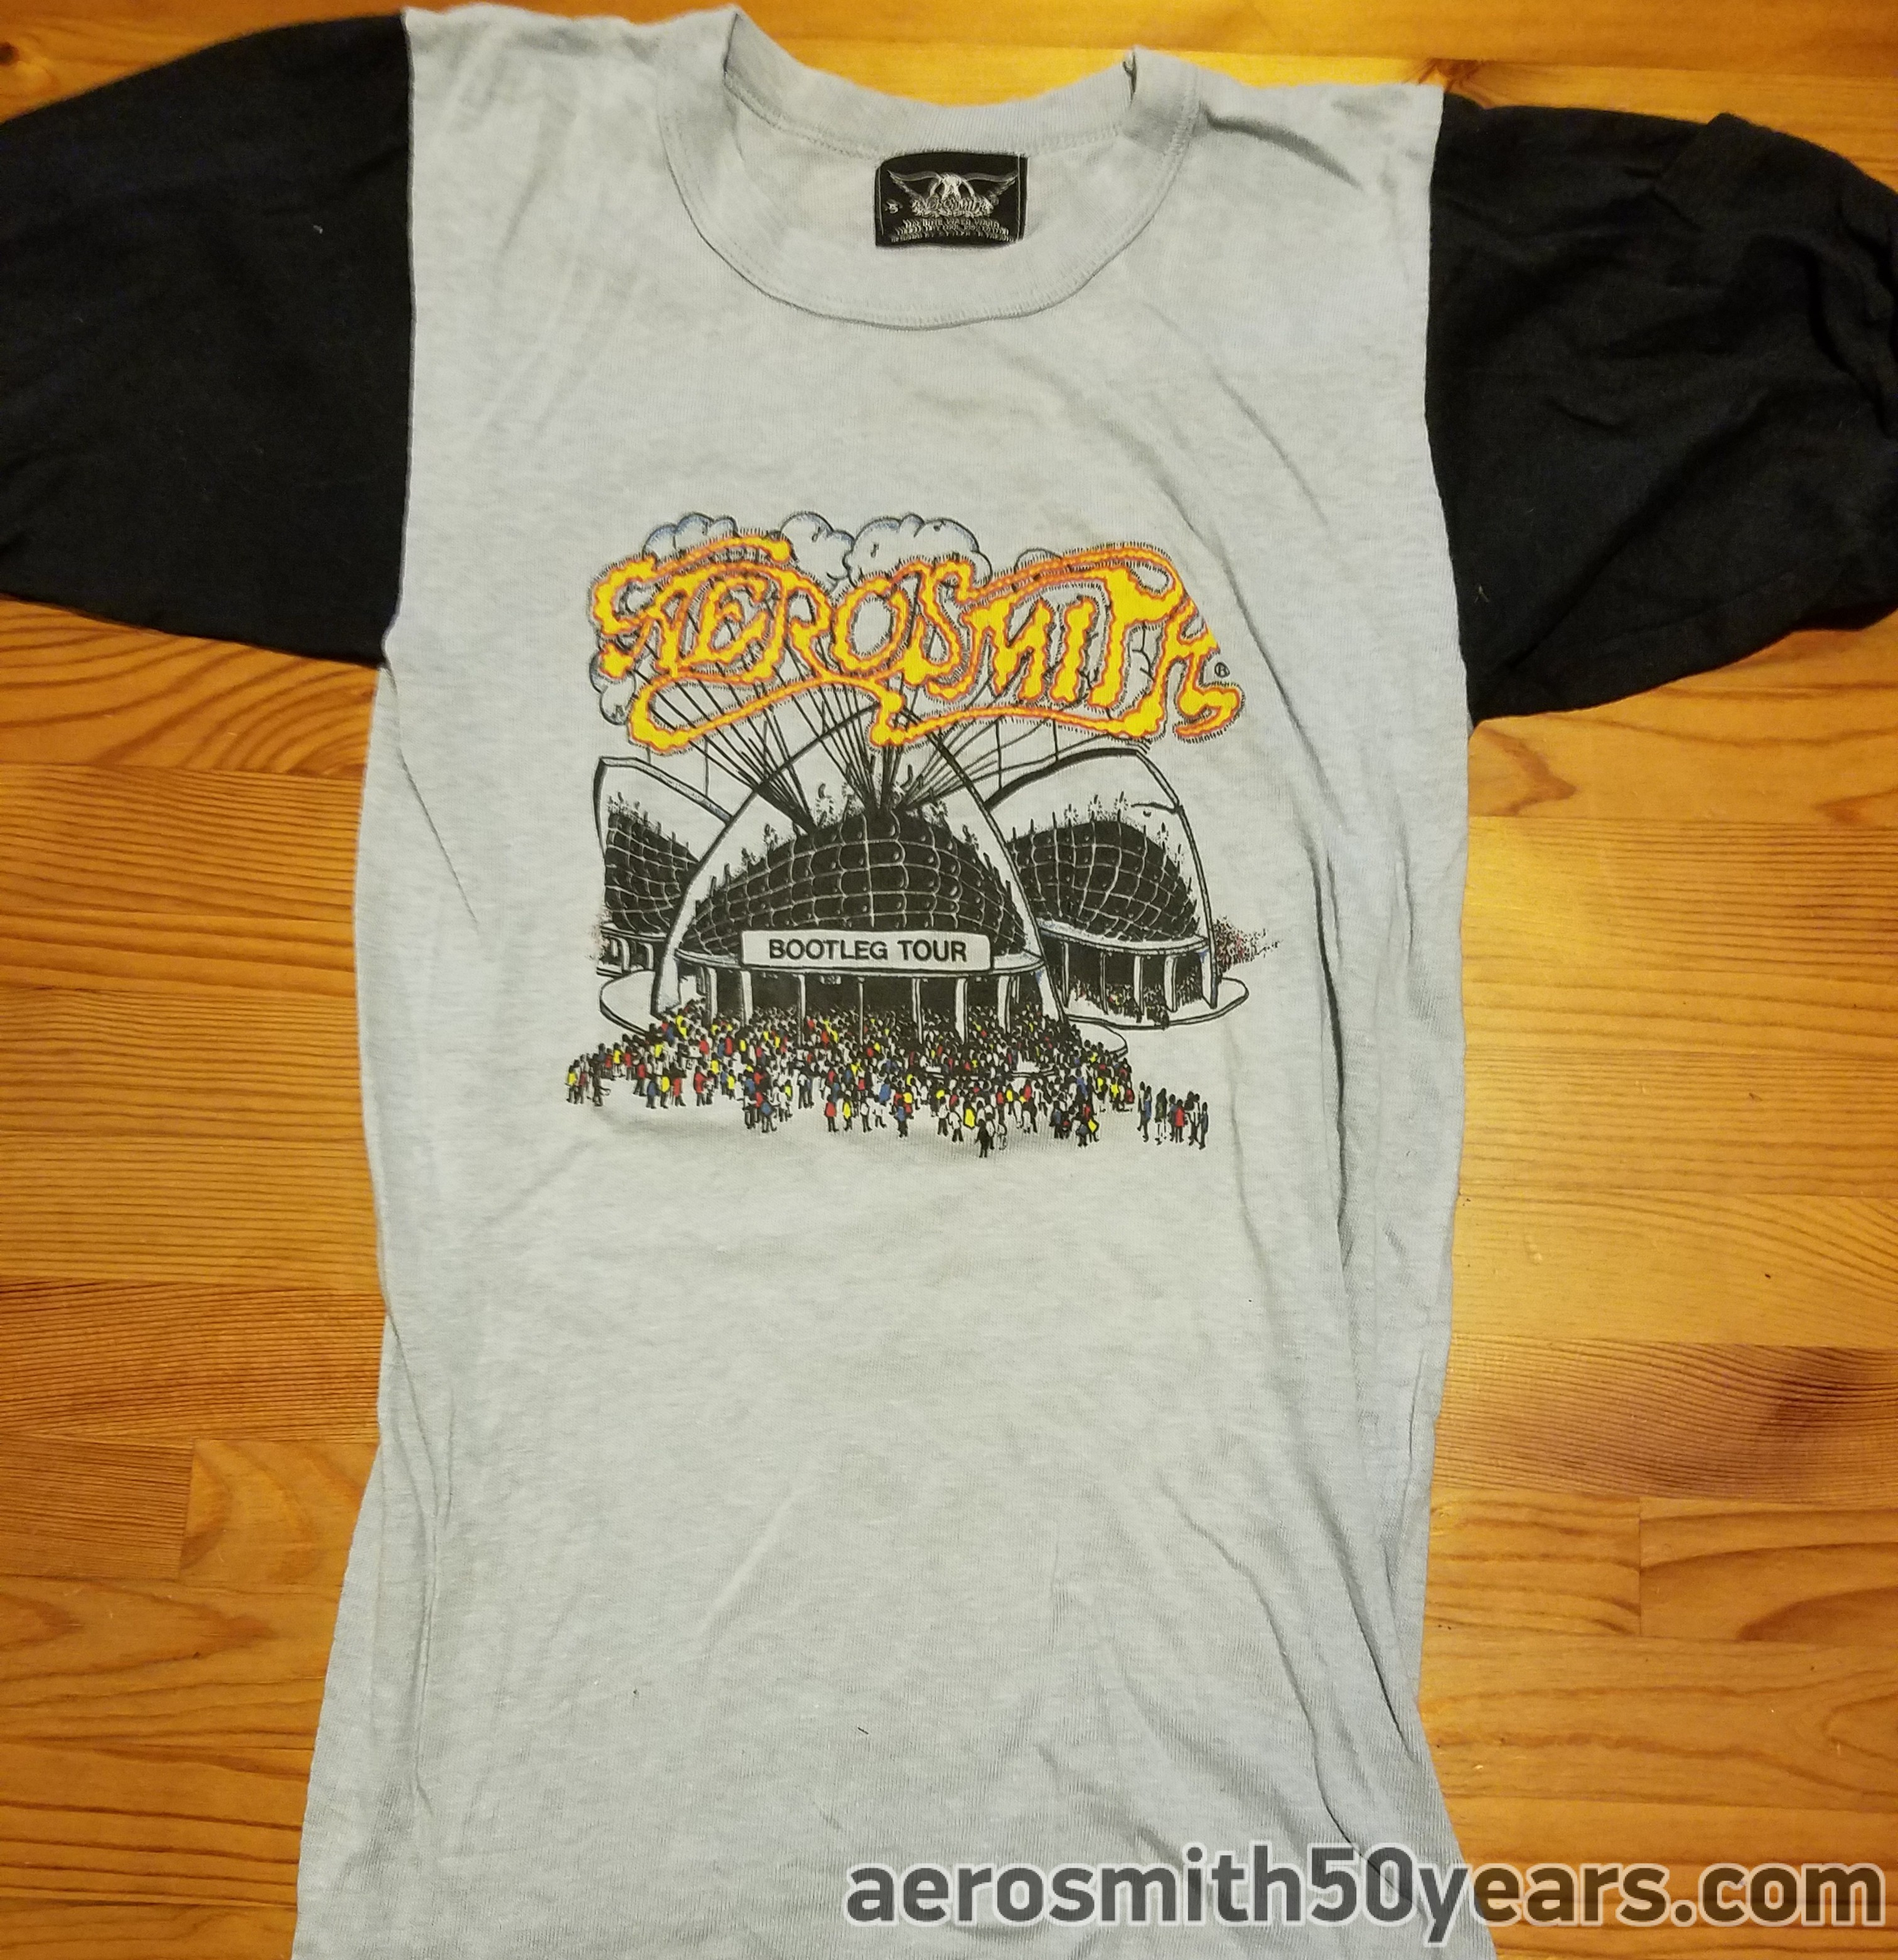 81c559e13 Bootleg Tour Shirt. Another Shirt With The Label Showing Design By Steven  Tallarico & Raymond Tabano. This Design Had A Special Pocket In The Sleeve.